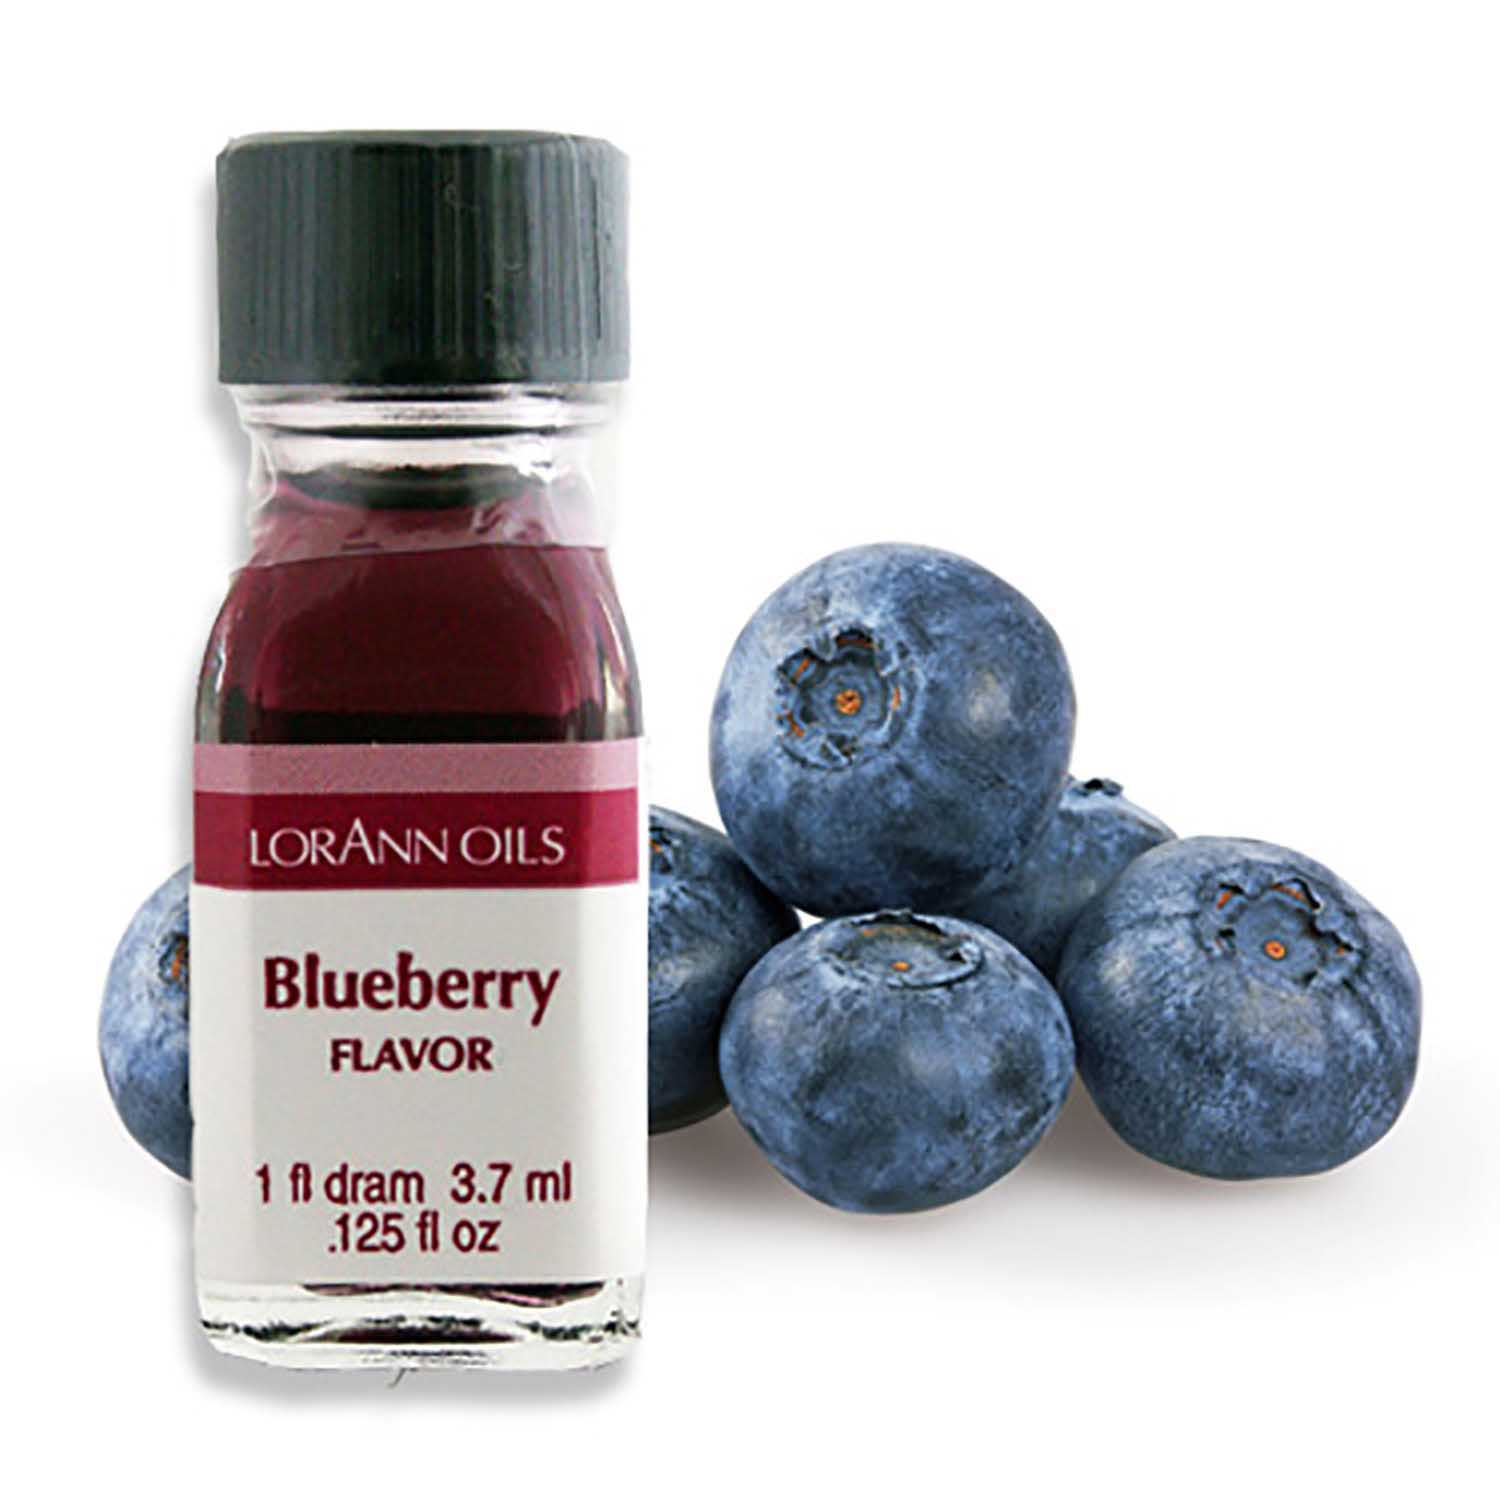 Blueberry Super-Strength Flavor